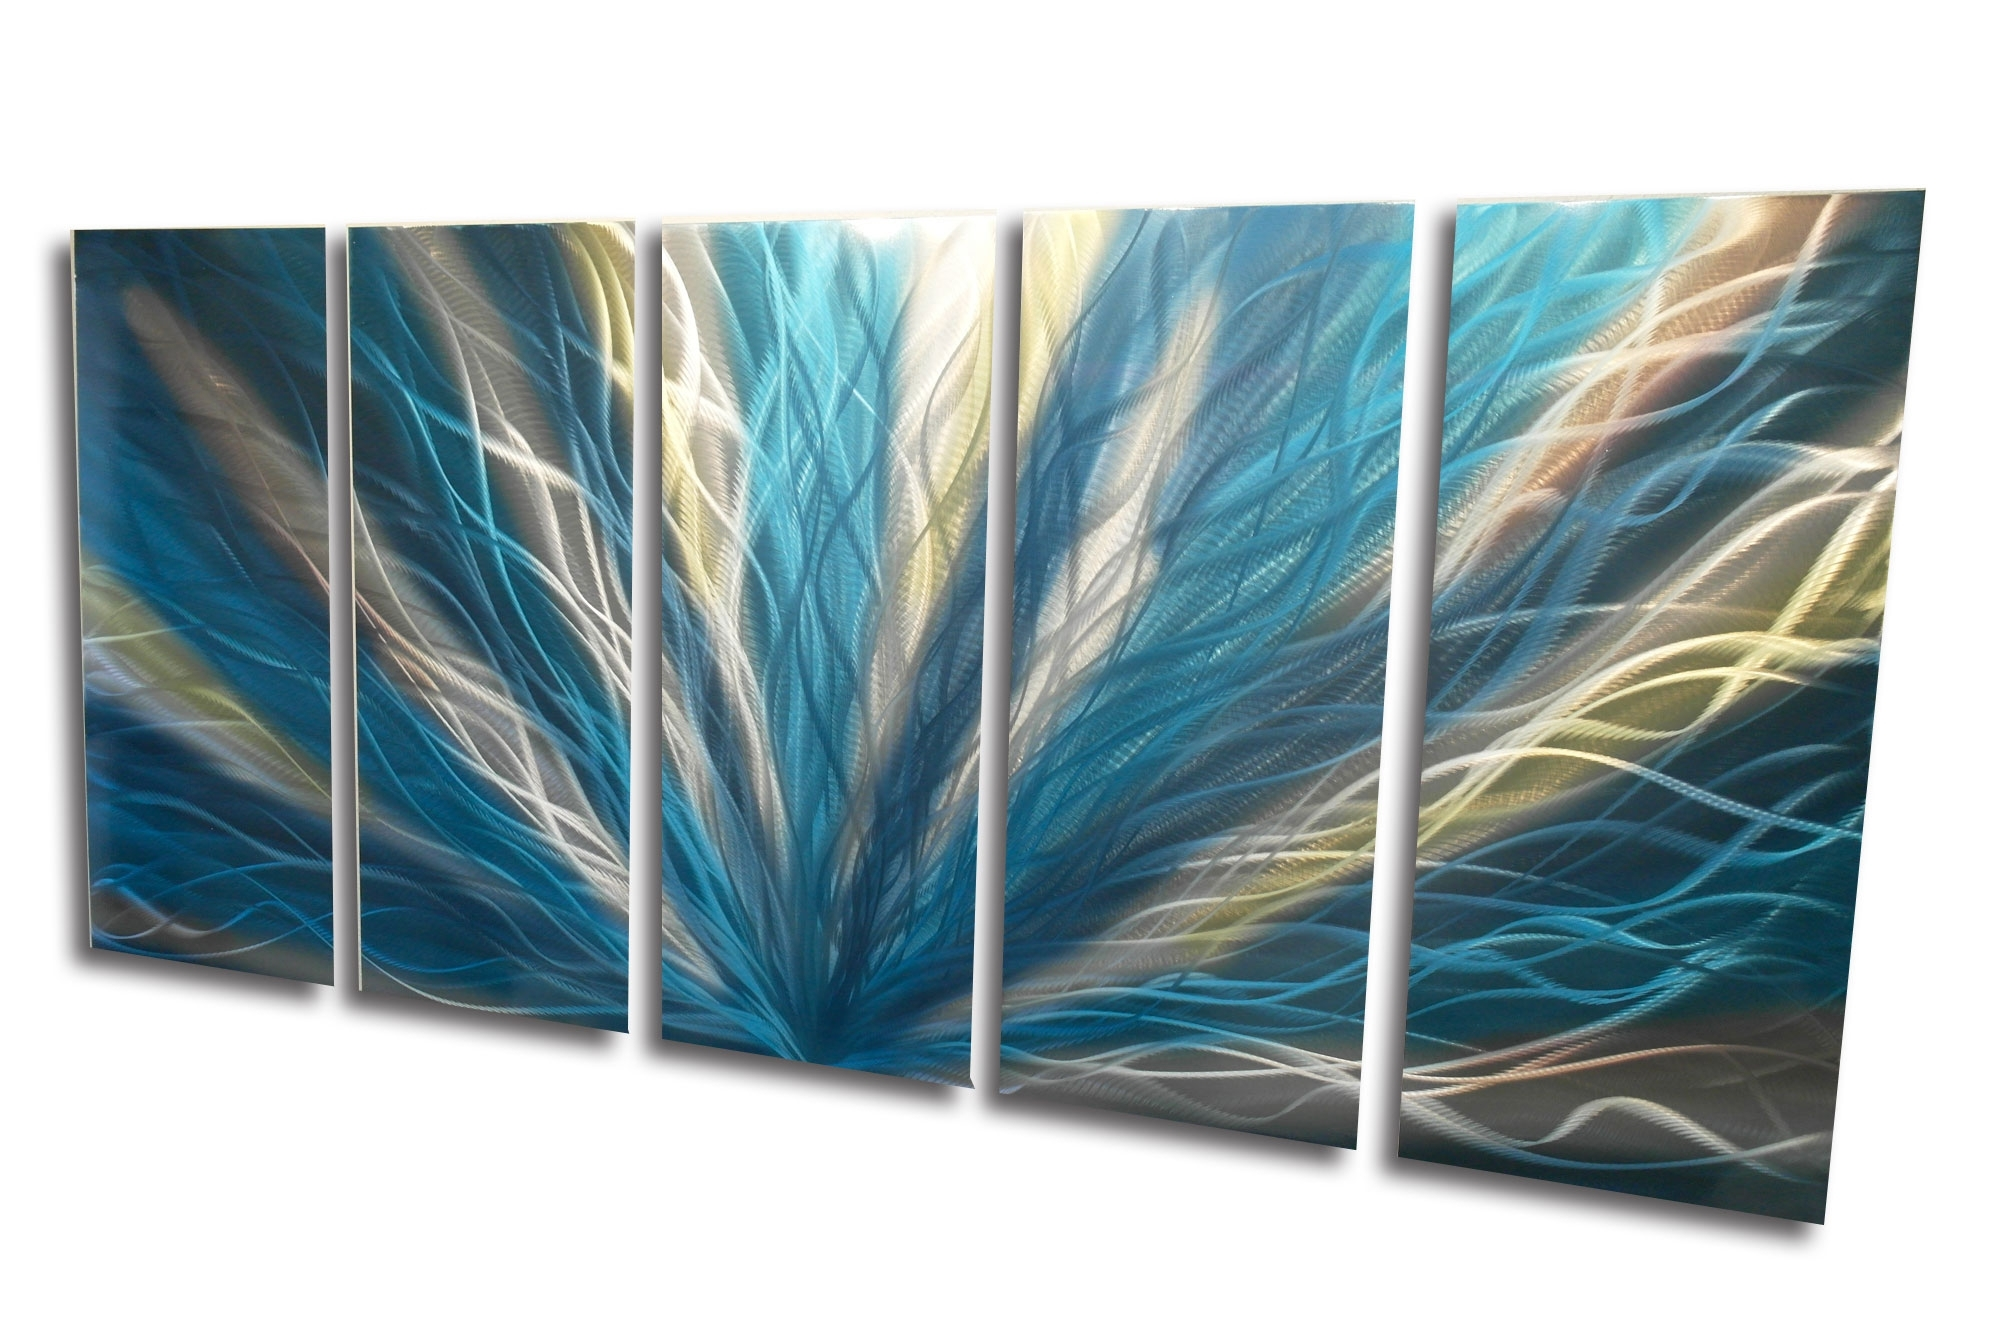 Newest Radiance Teal 36X79 – Metal Wall Art Abstract Sculpture Modern Inside Abstract Leaf Metal Wall Art (View 13 of 15)